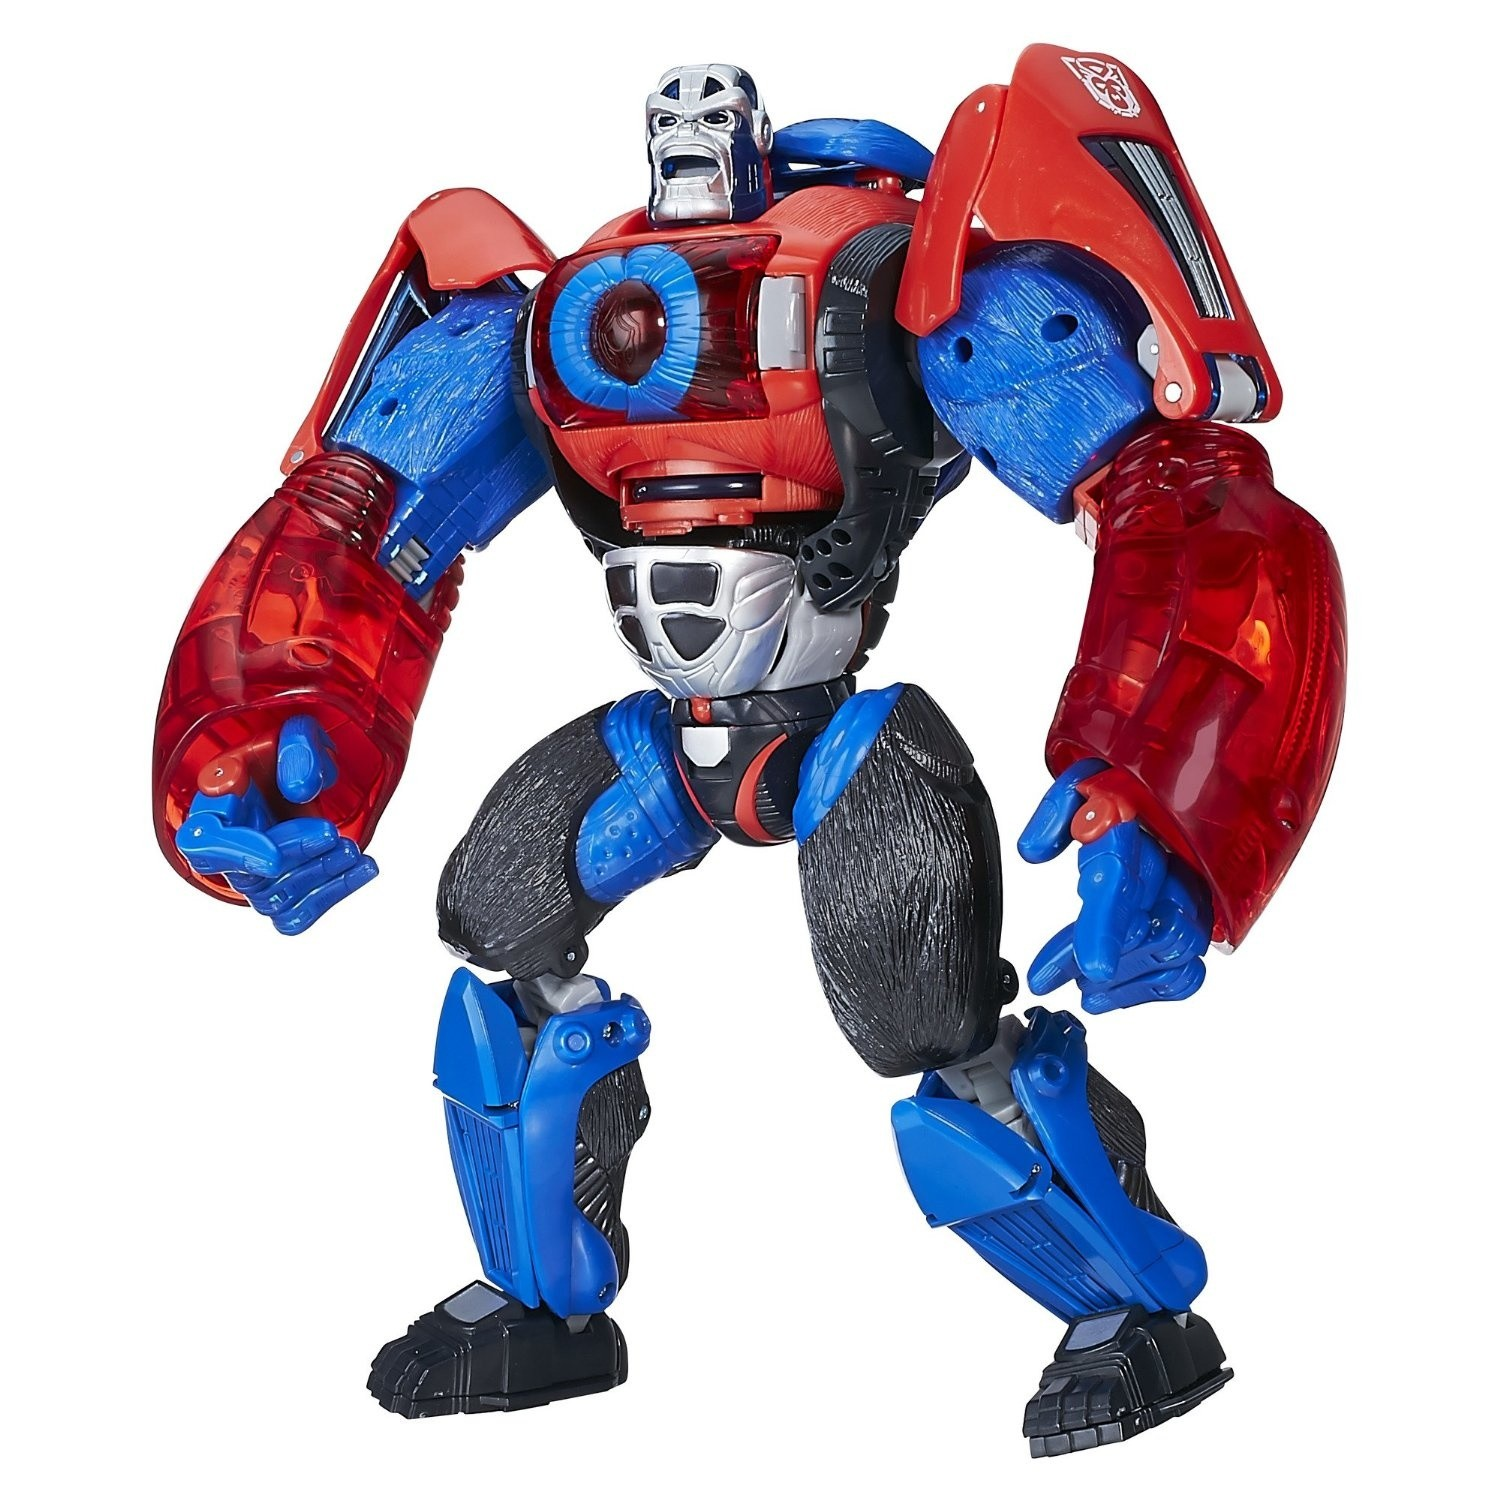 Transformers Generations Optimus Primal Platinum Edition Year Of The Monkey